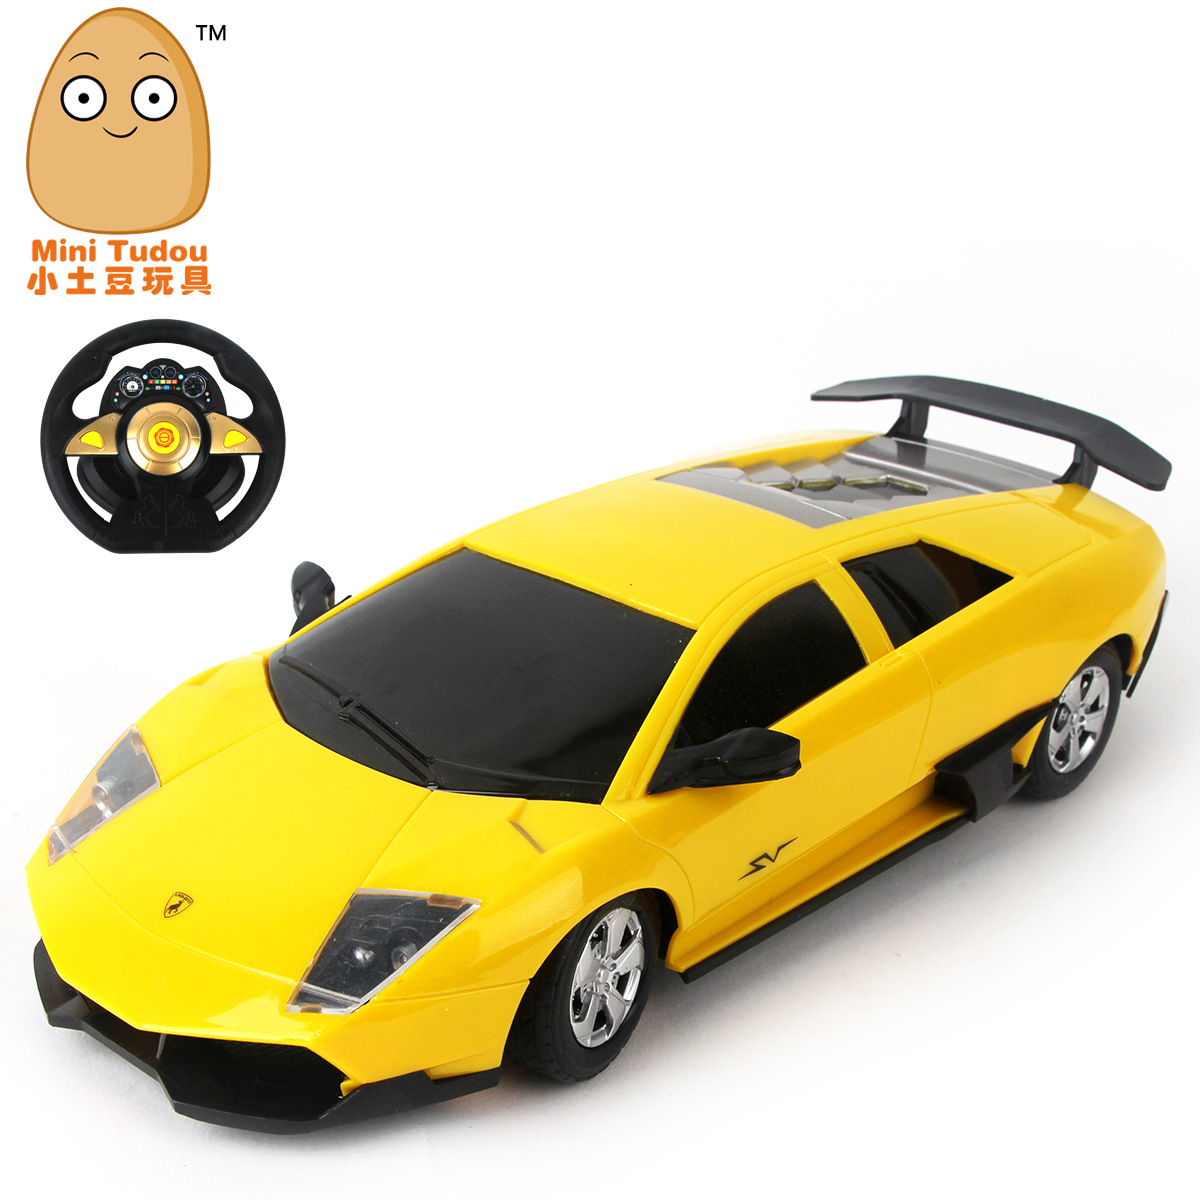 online shop funny toy child build kid family fun rc car remote control toy car model 116 steering wheel remote control car controle remoto aliexpress